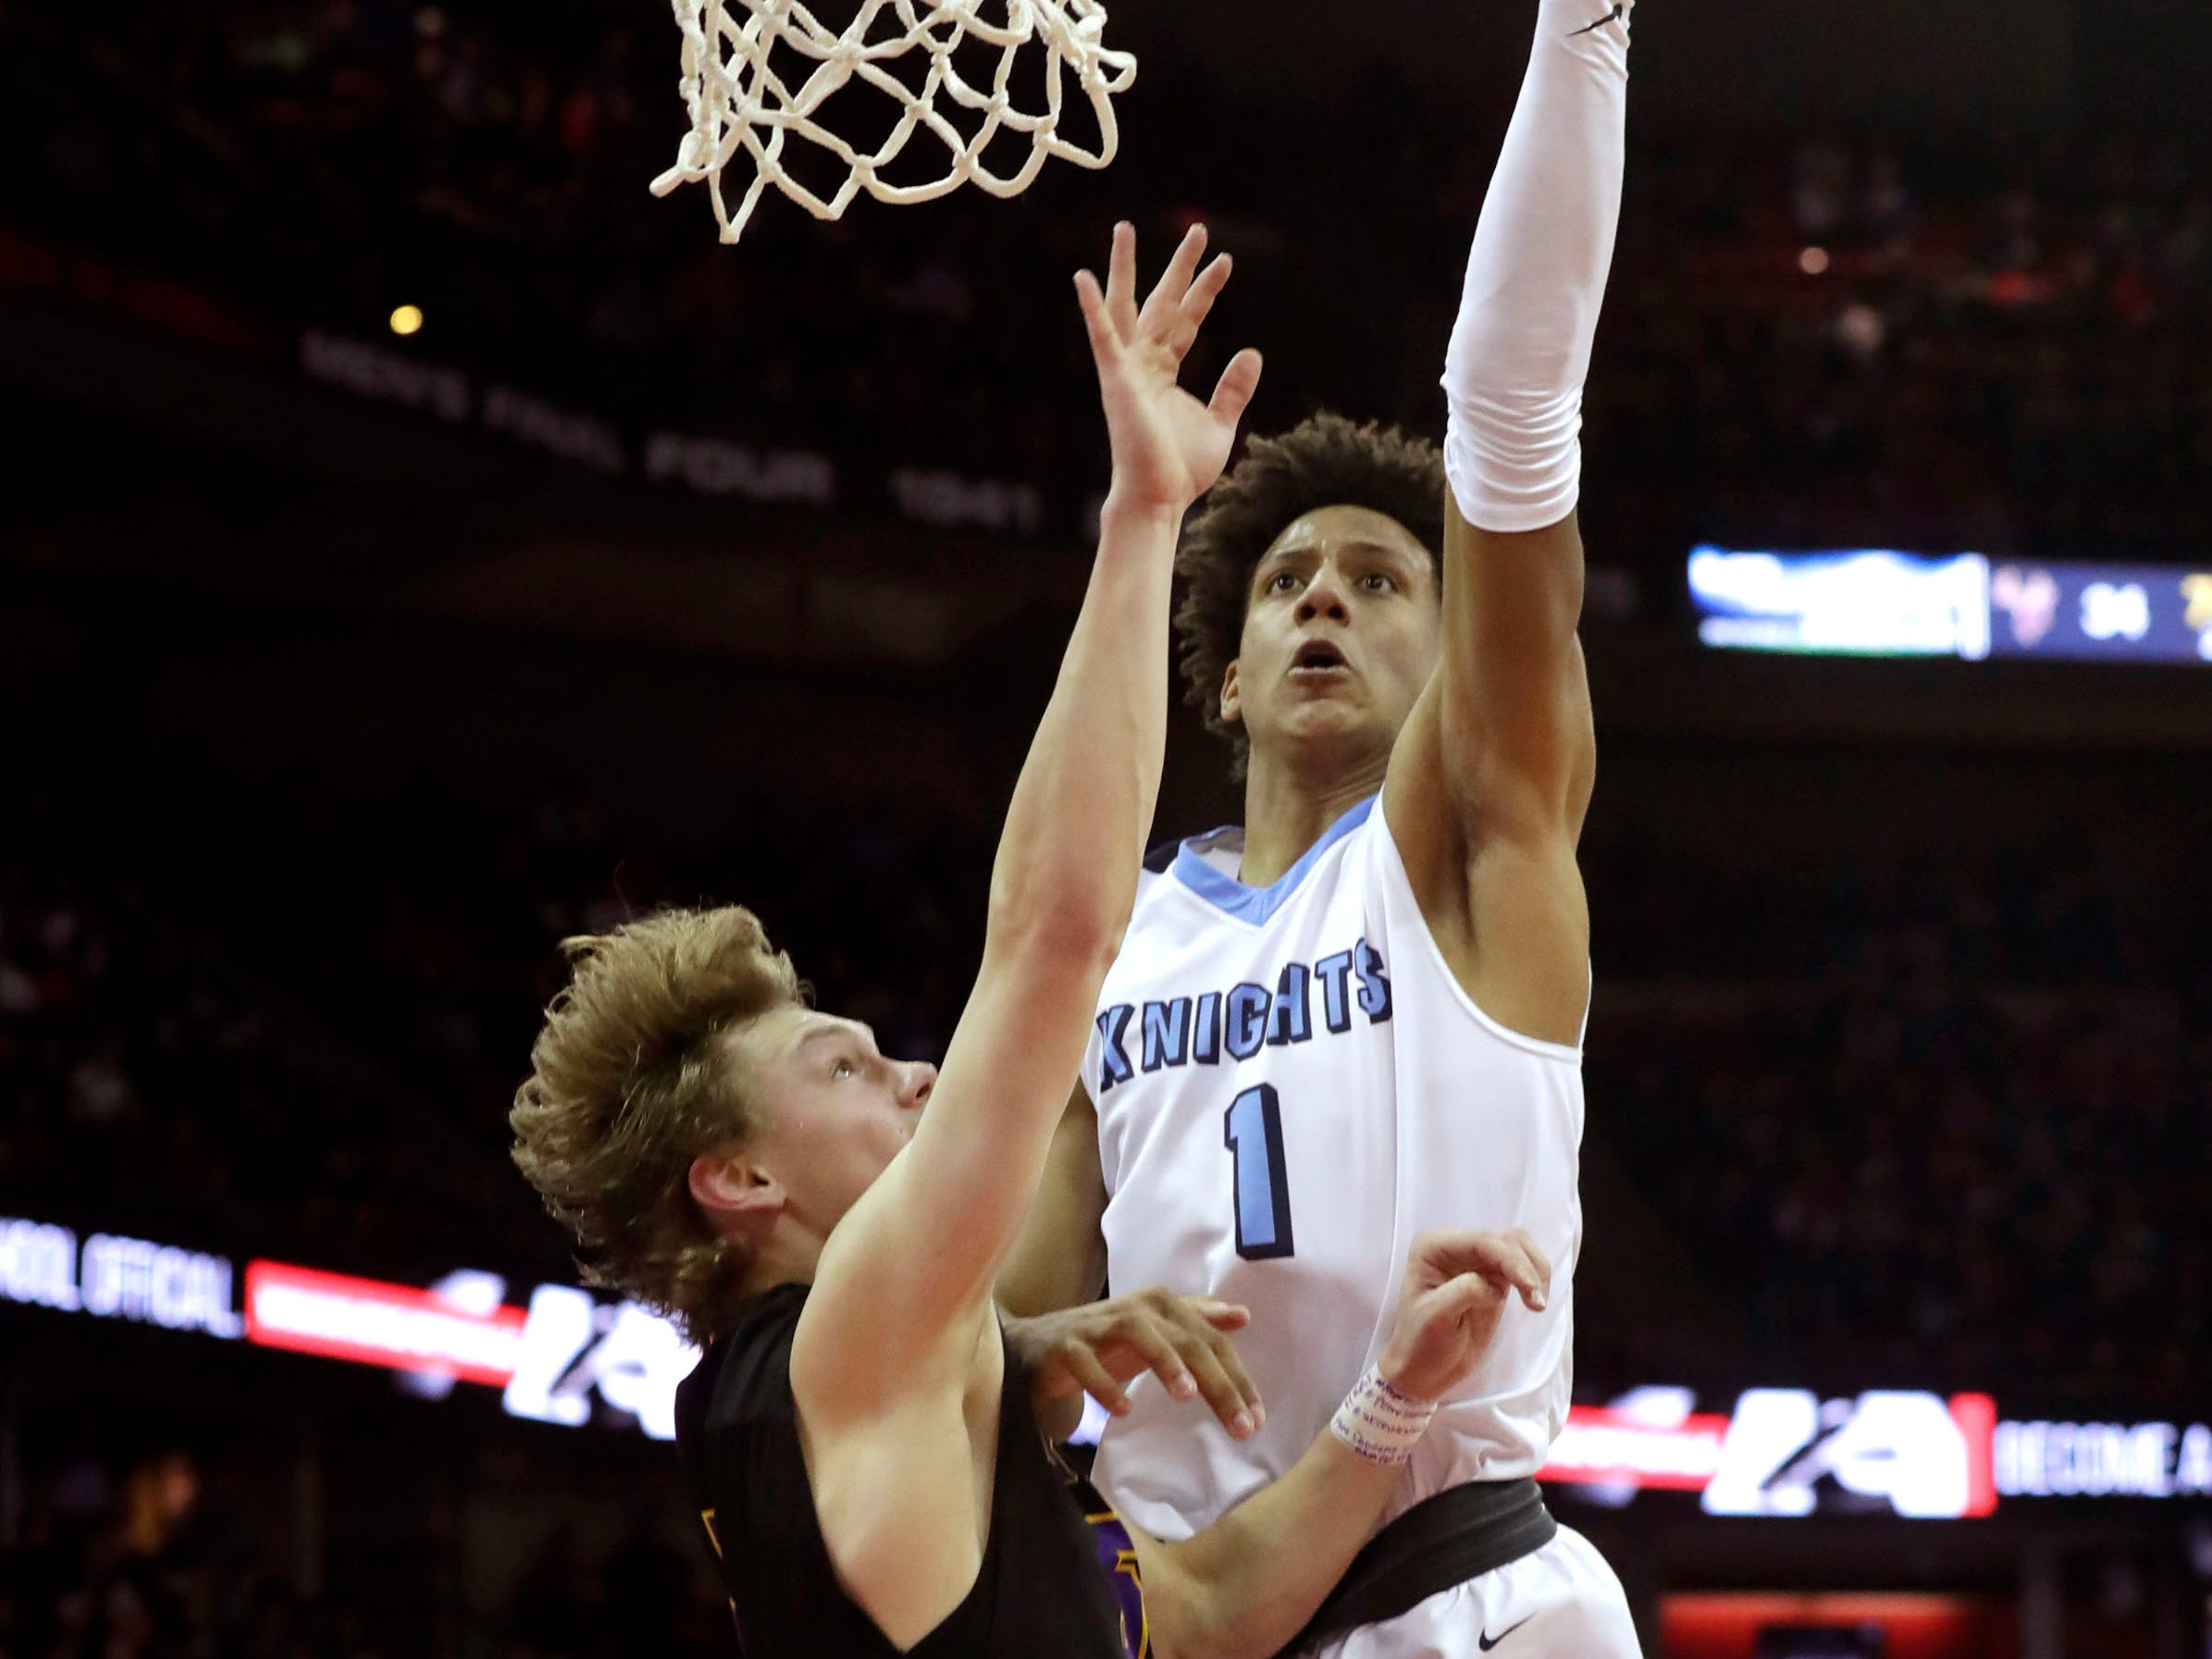 Nicolet's Jalen Johnson gets to the rim for two of his 16 points.